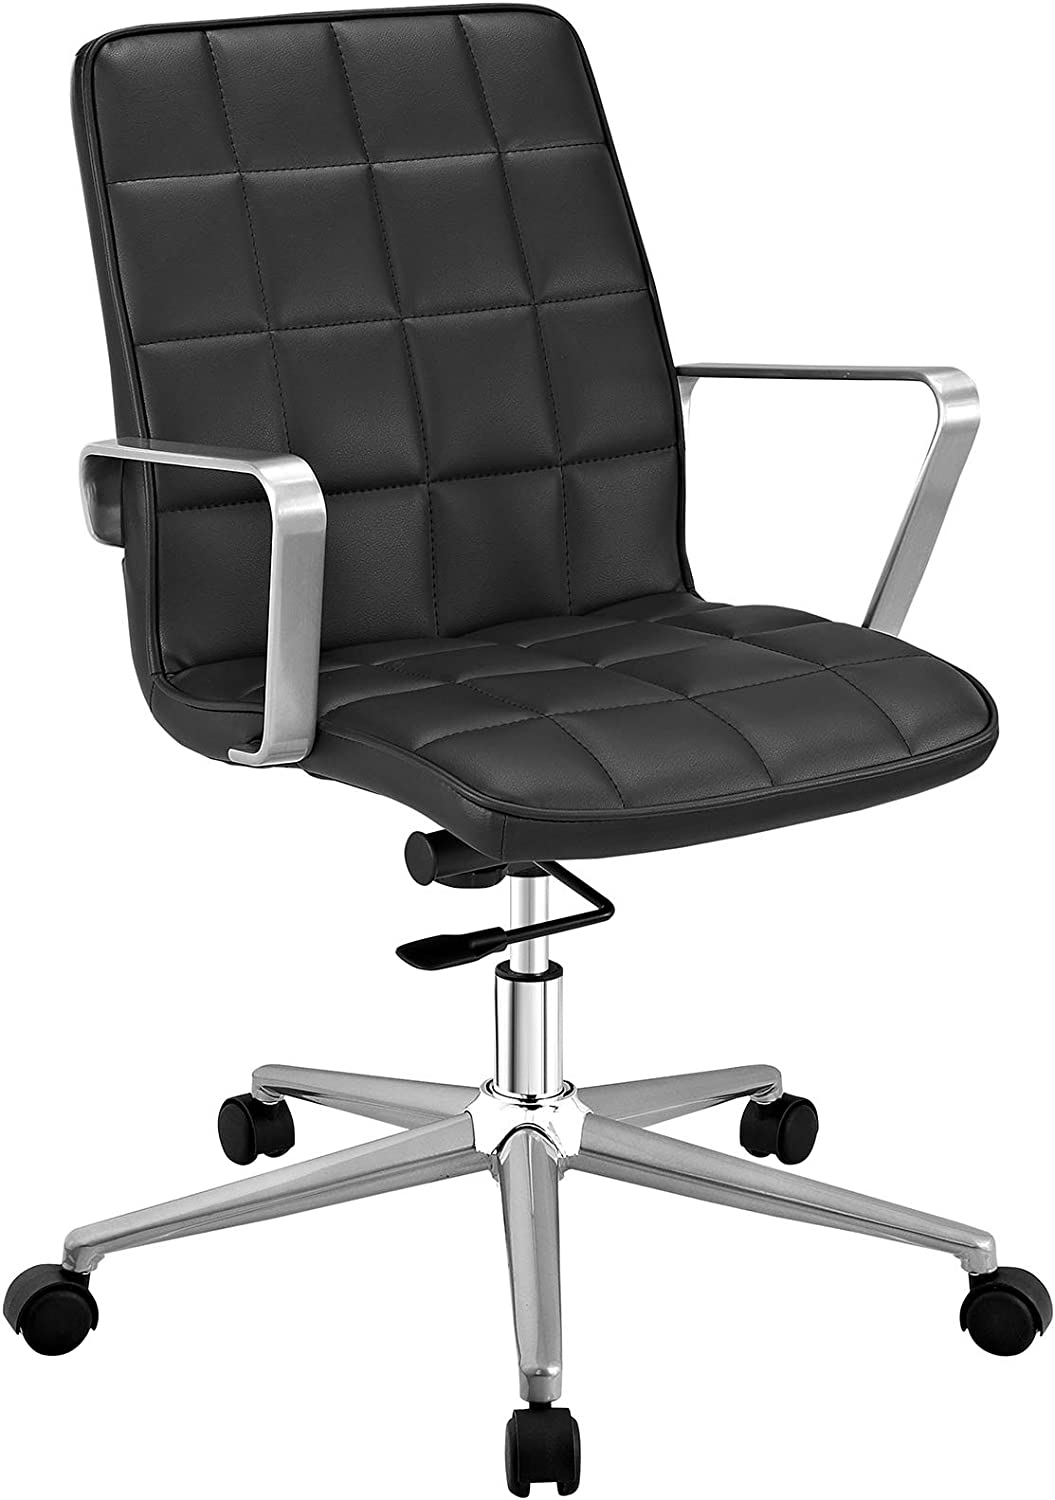 Modway Tile Square Stitched Faux Leather Mid-Back Office Chair in Black